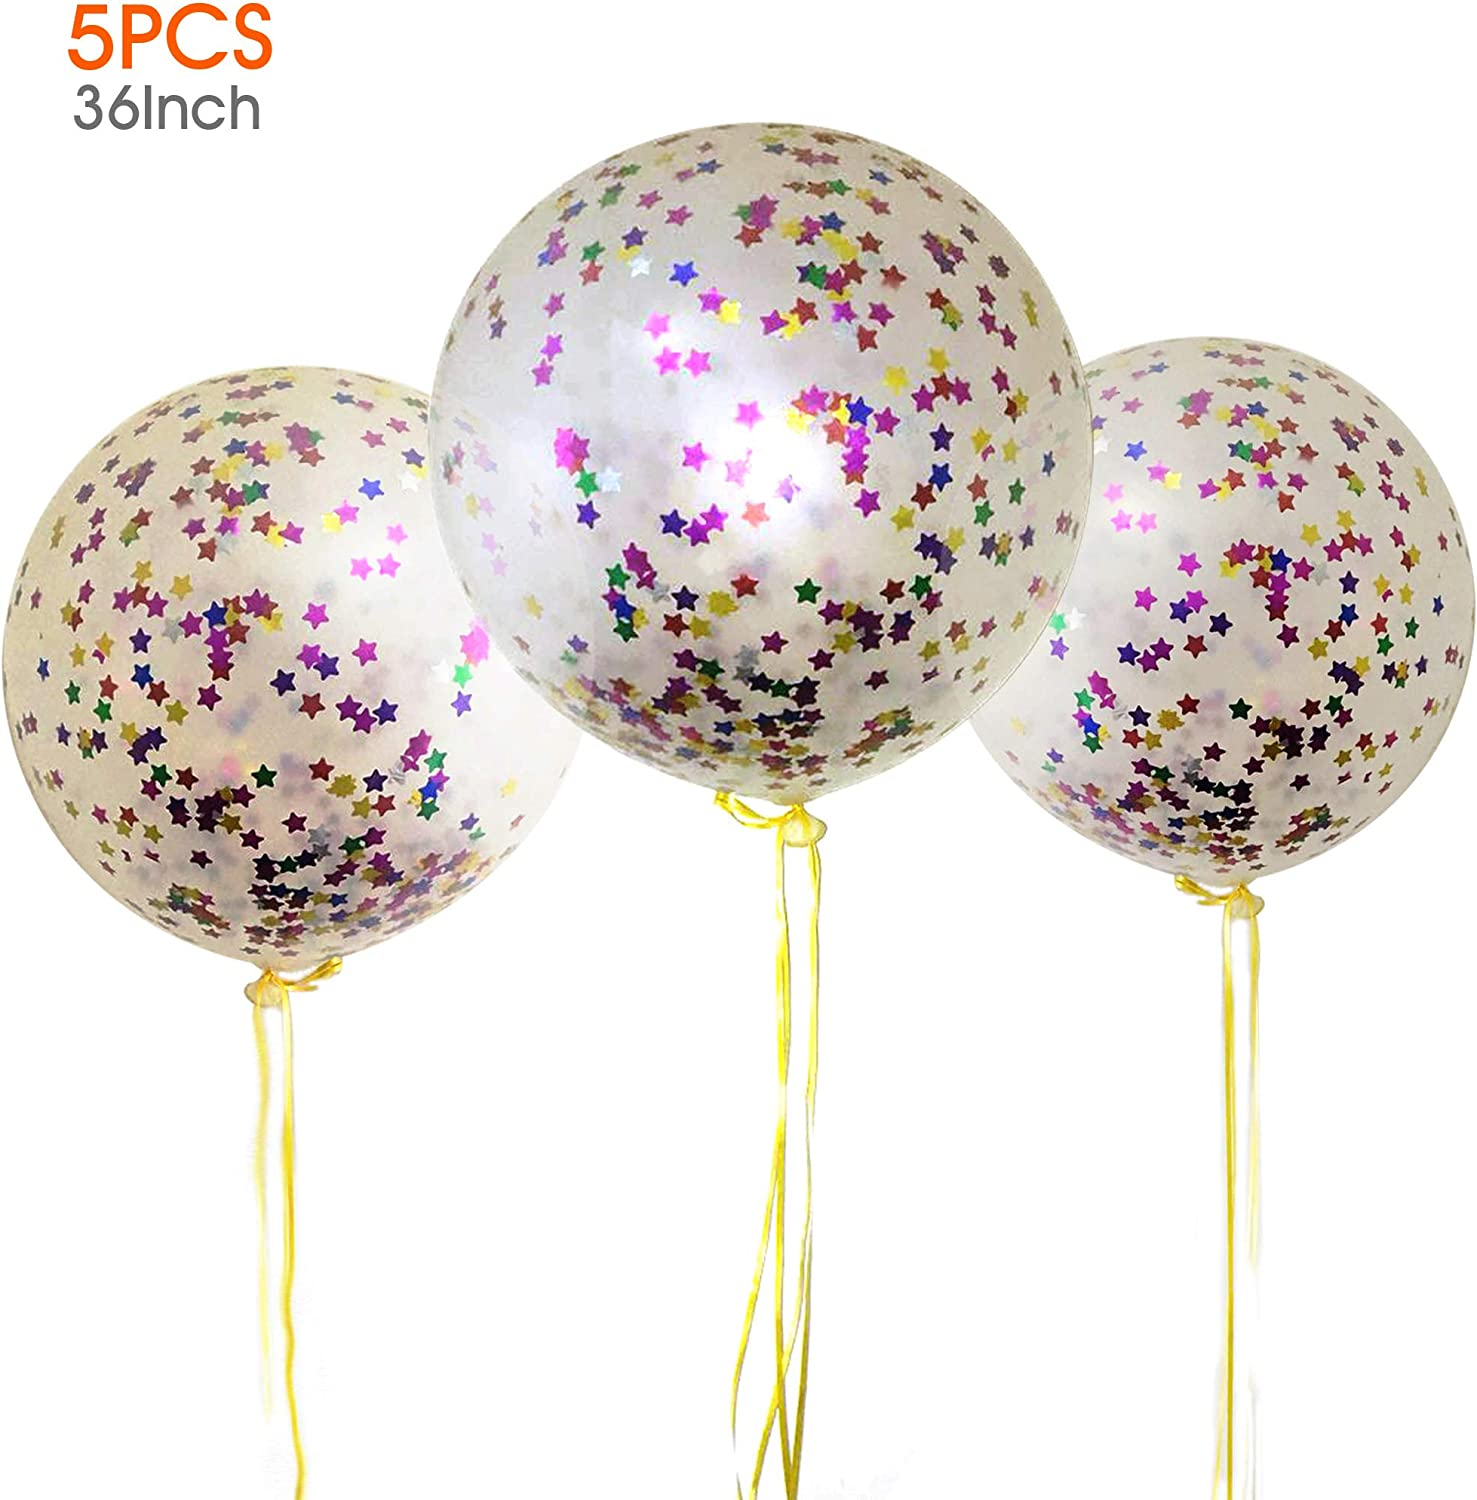 Pink and Mint and Gold 60cm Confetti Balloon giant jumbo latex helium or air confetti filled balloons clear qualatex transparent.